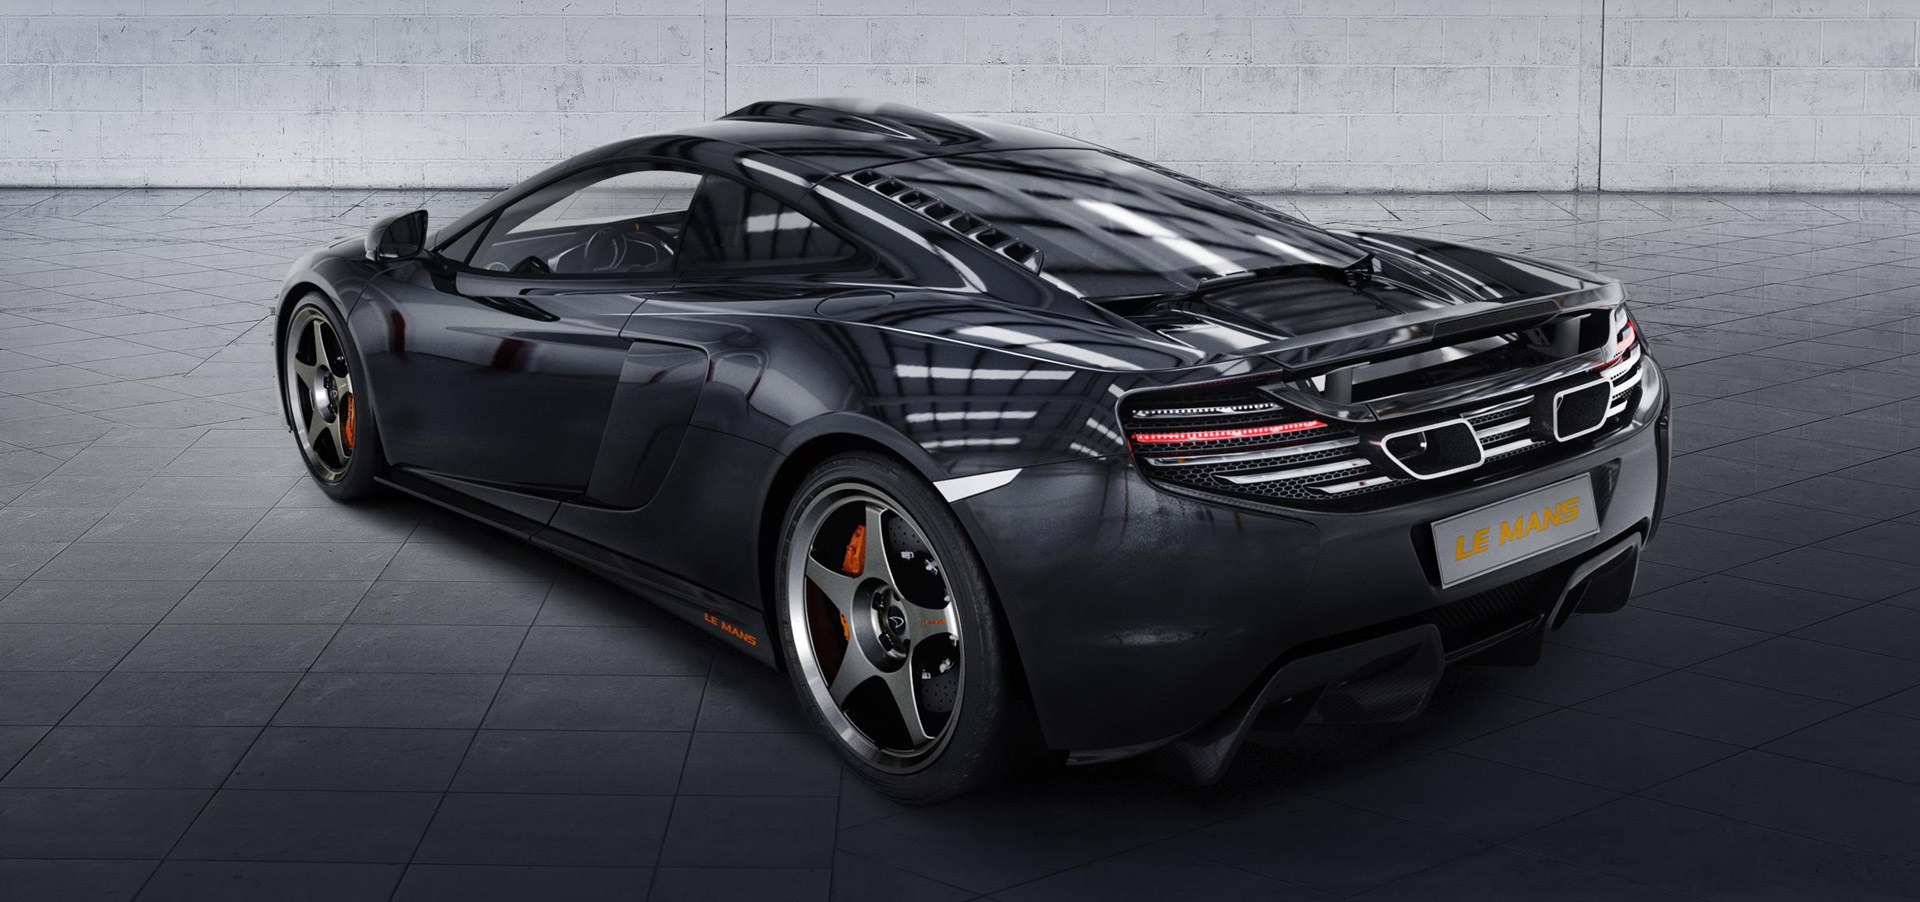 McLaren 650S Le Mans, 2015 Ford Shelby GT, 2017 Audi A4: This Week's Top Photos